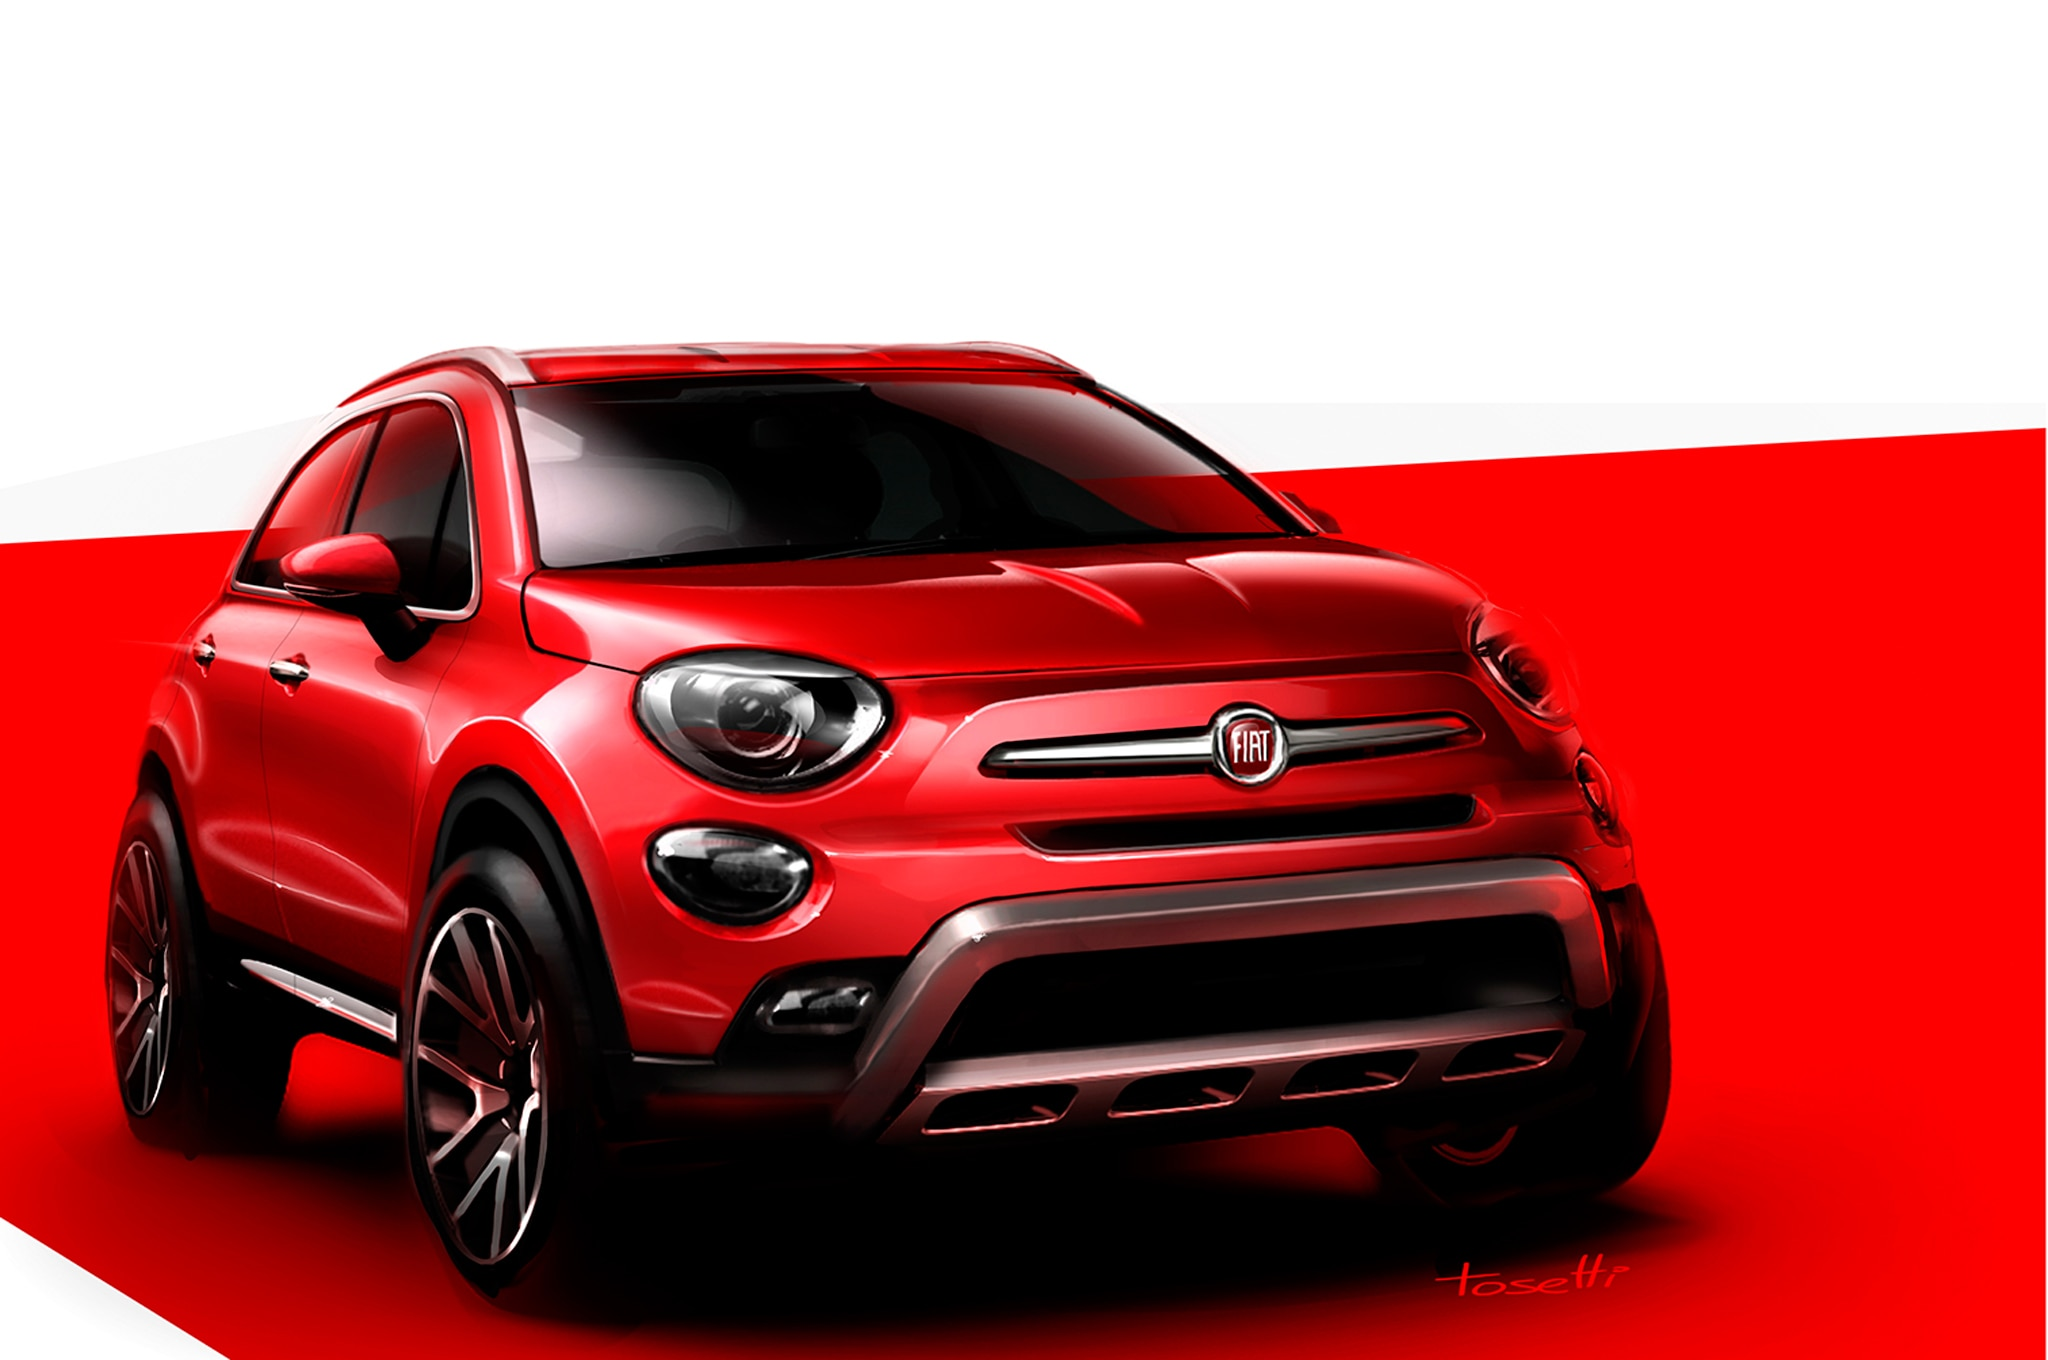 2016 fiat 500x makes u s premiere at los angeles auto show. Black Bedroom Furniture Sets. Home Design Ideas